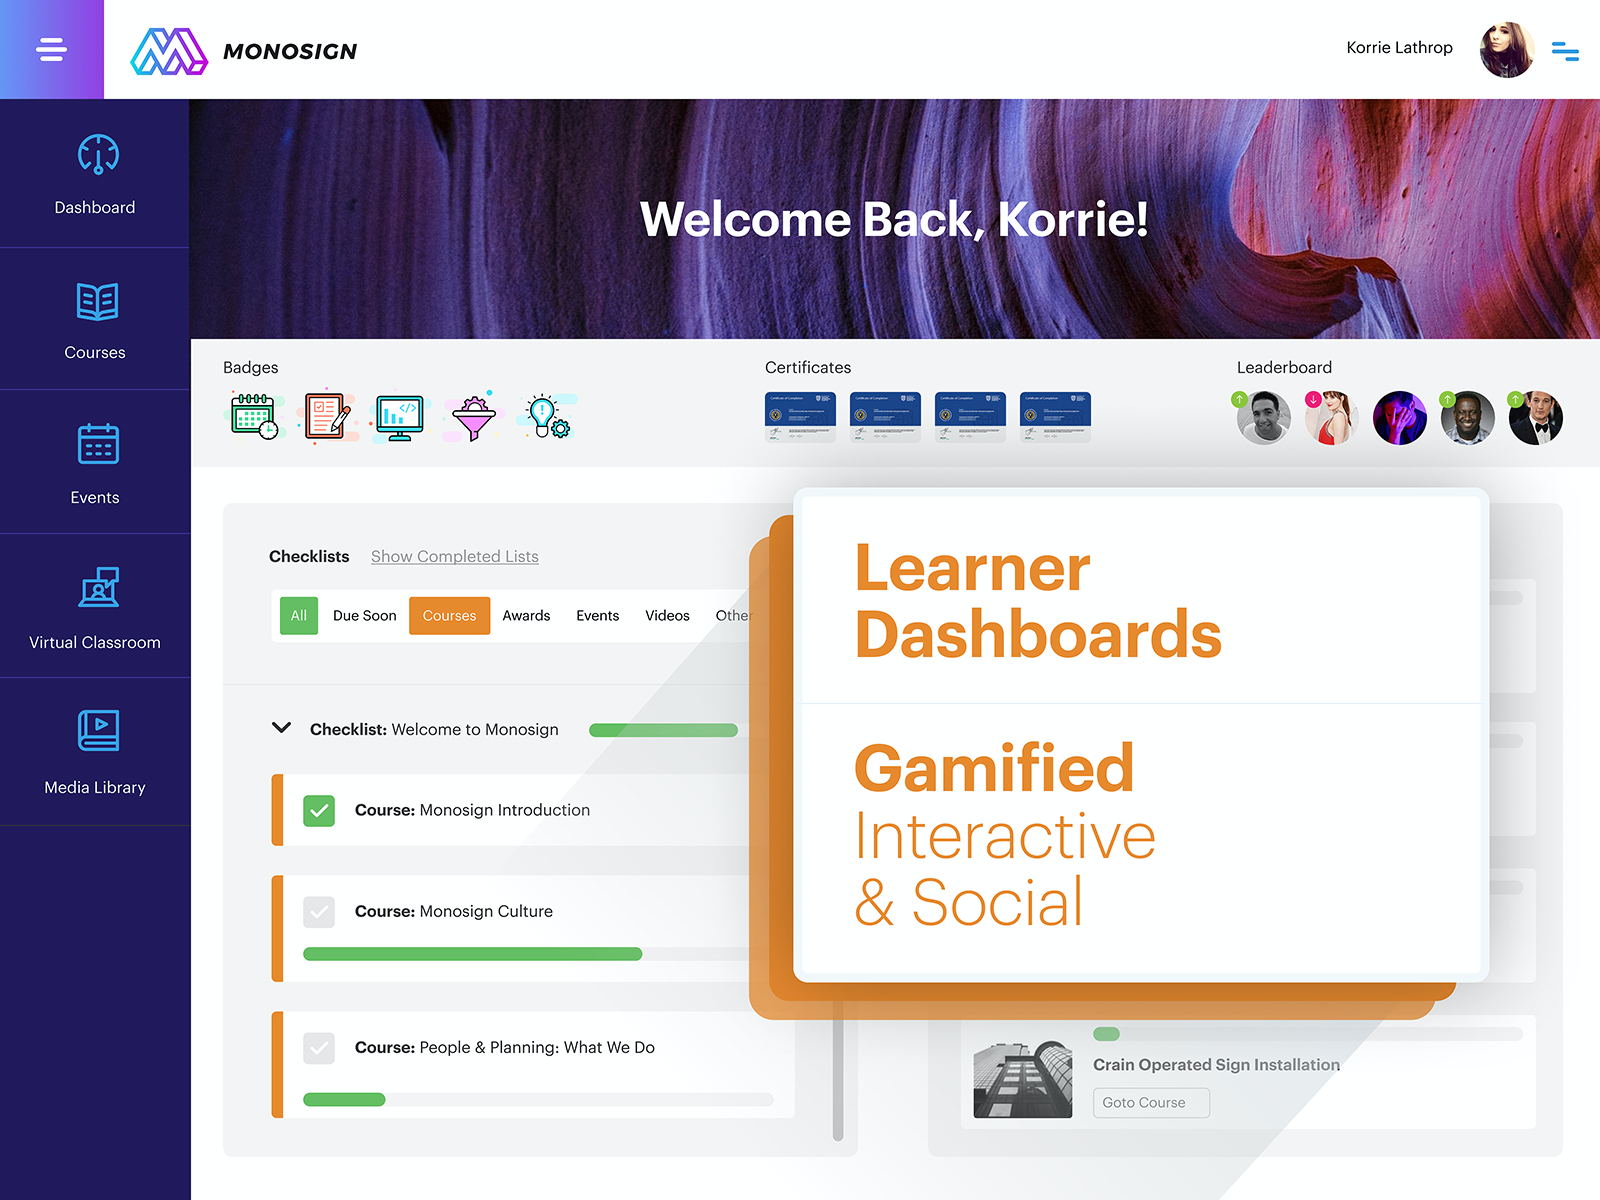 Learner Dashboard, Gamified Interactive and Social